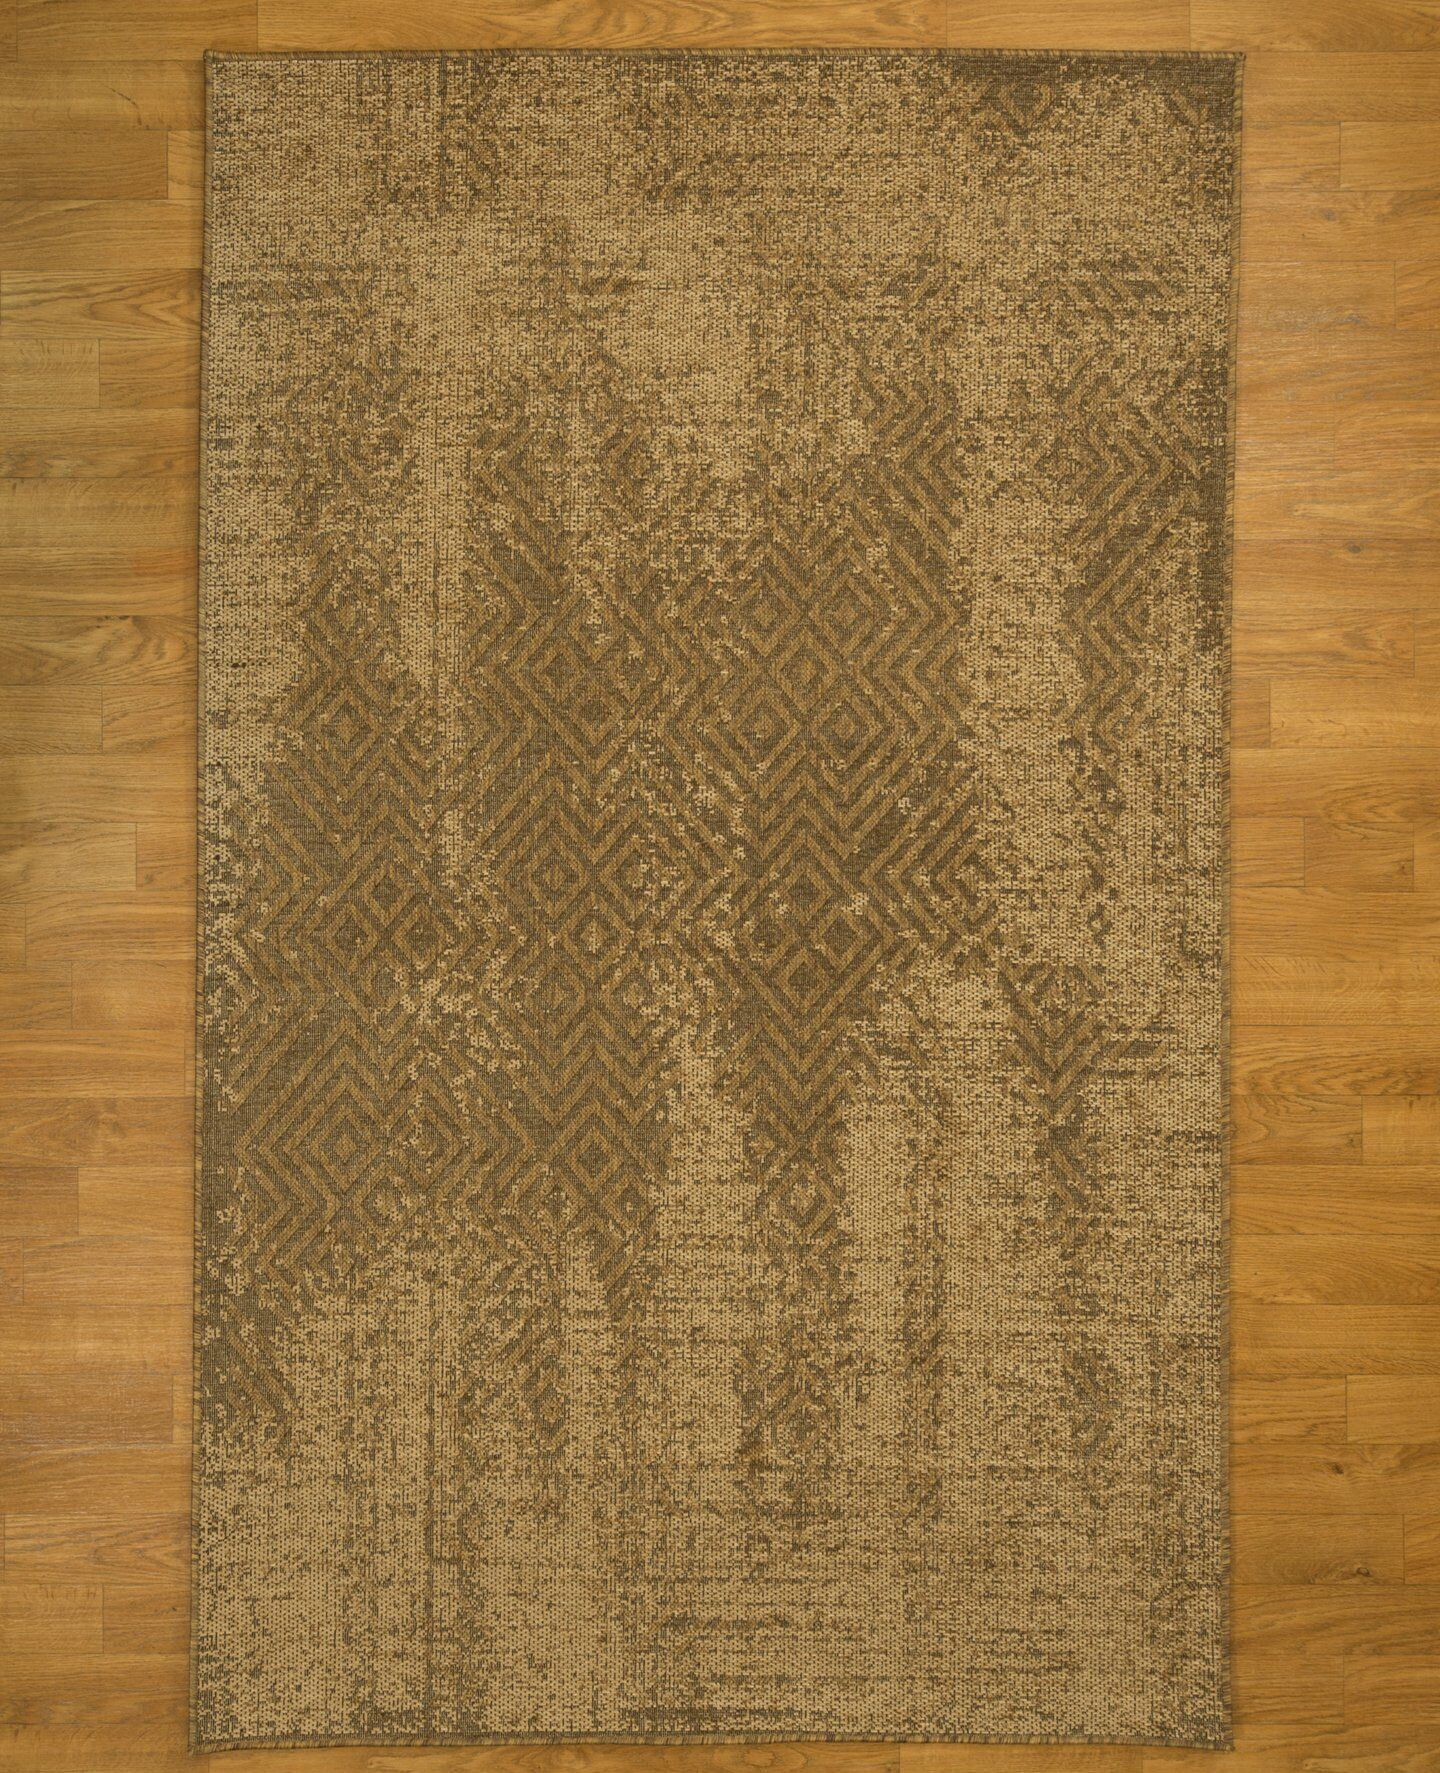 Rome Oriental Hand-Woven Beige Area Rug Rug Size: Rectangle 6'5